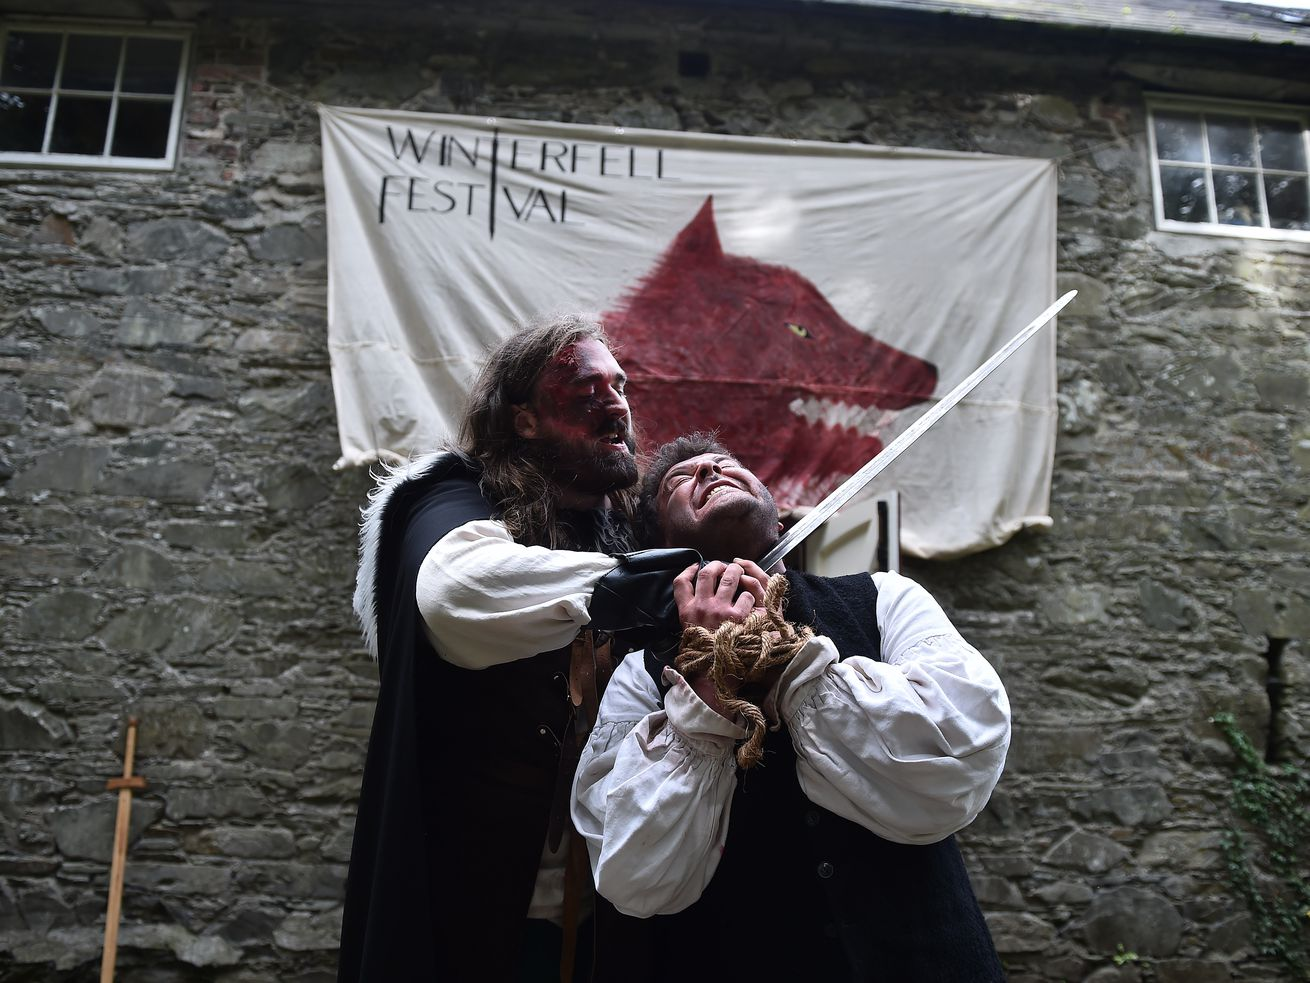 'Game of Thrones' Winterfell Festival 2018 Held In Northern Ireland